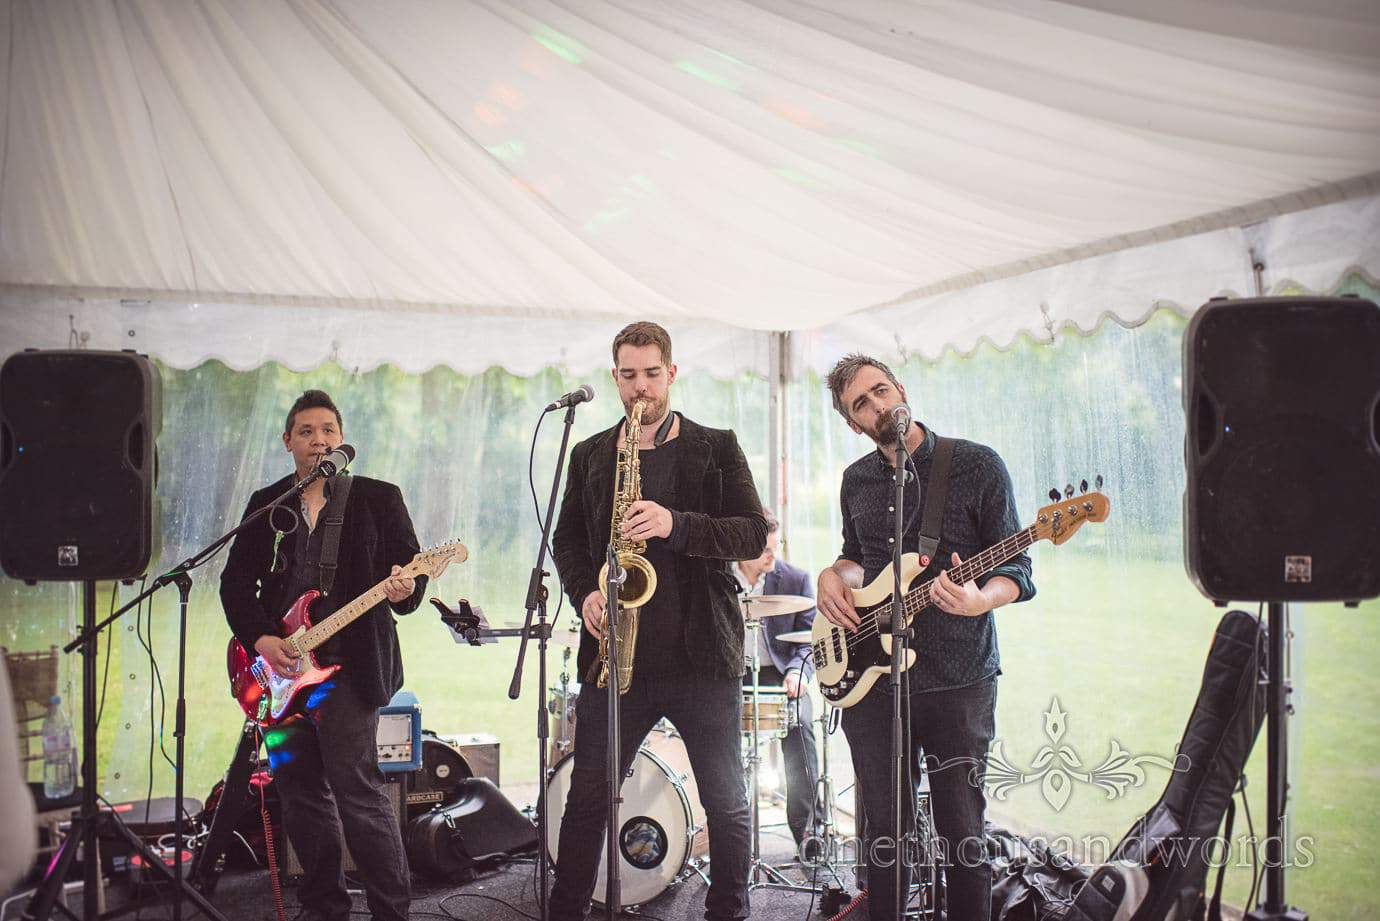 The Brightside wedding band playing at The Old Vicarage marquee Wedding